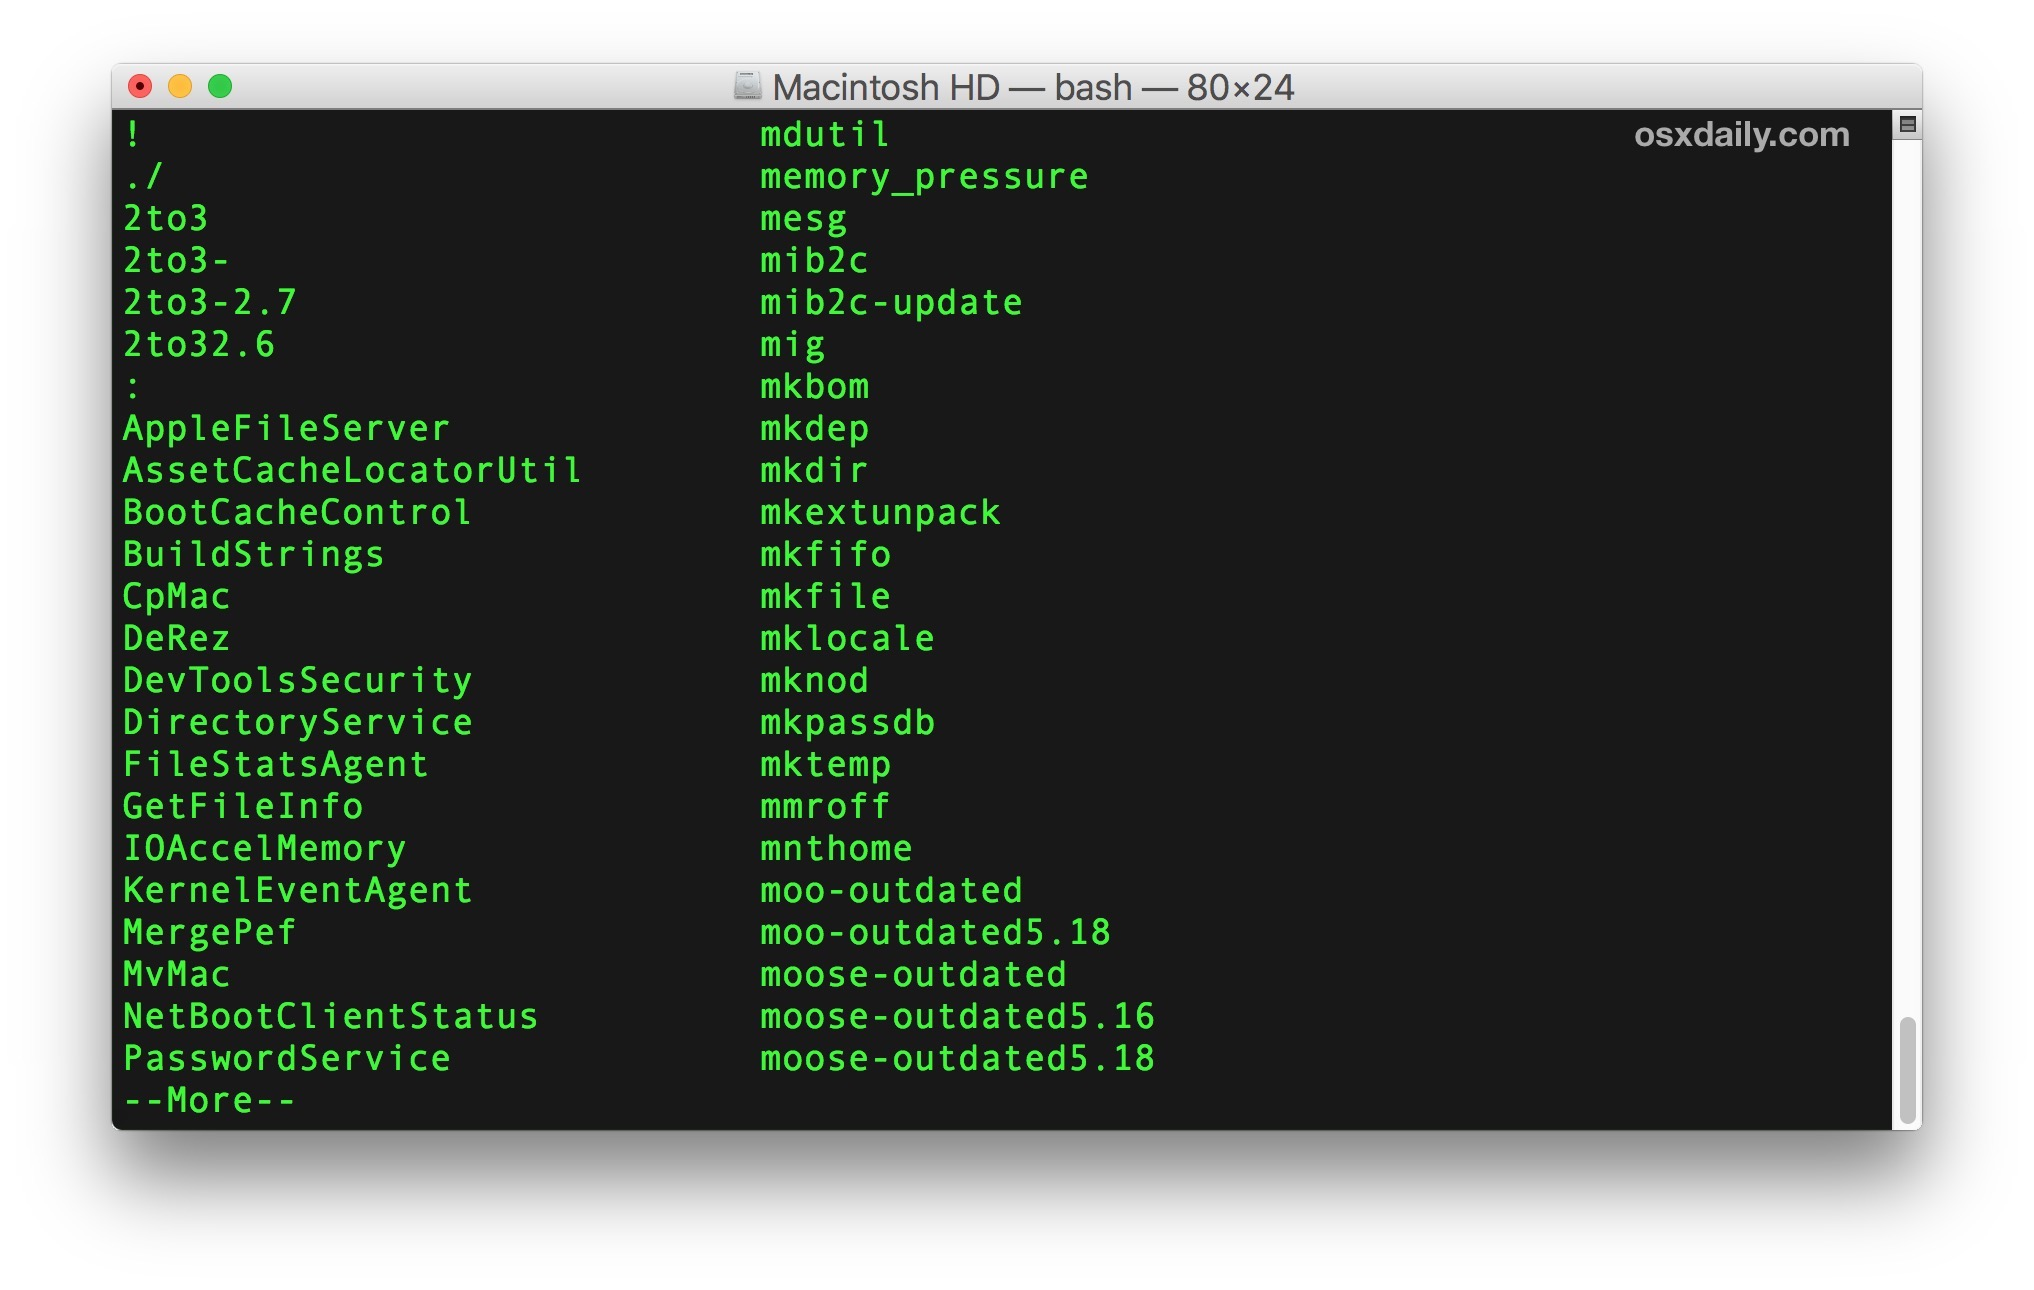 Showing all terminal commands on Mac